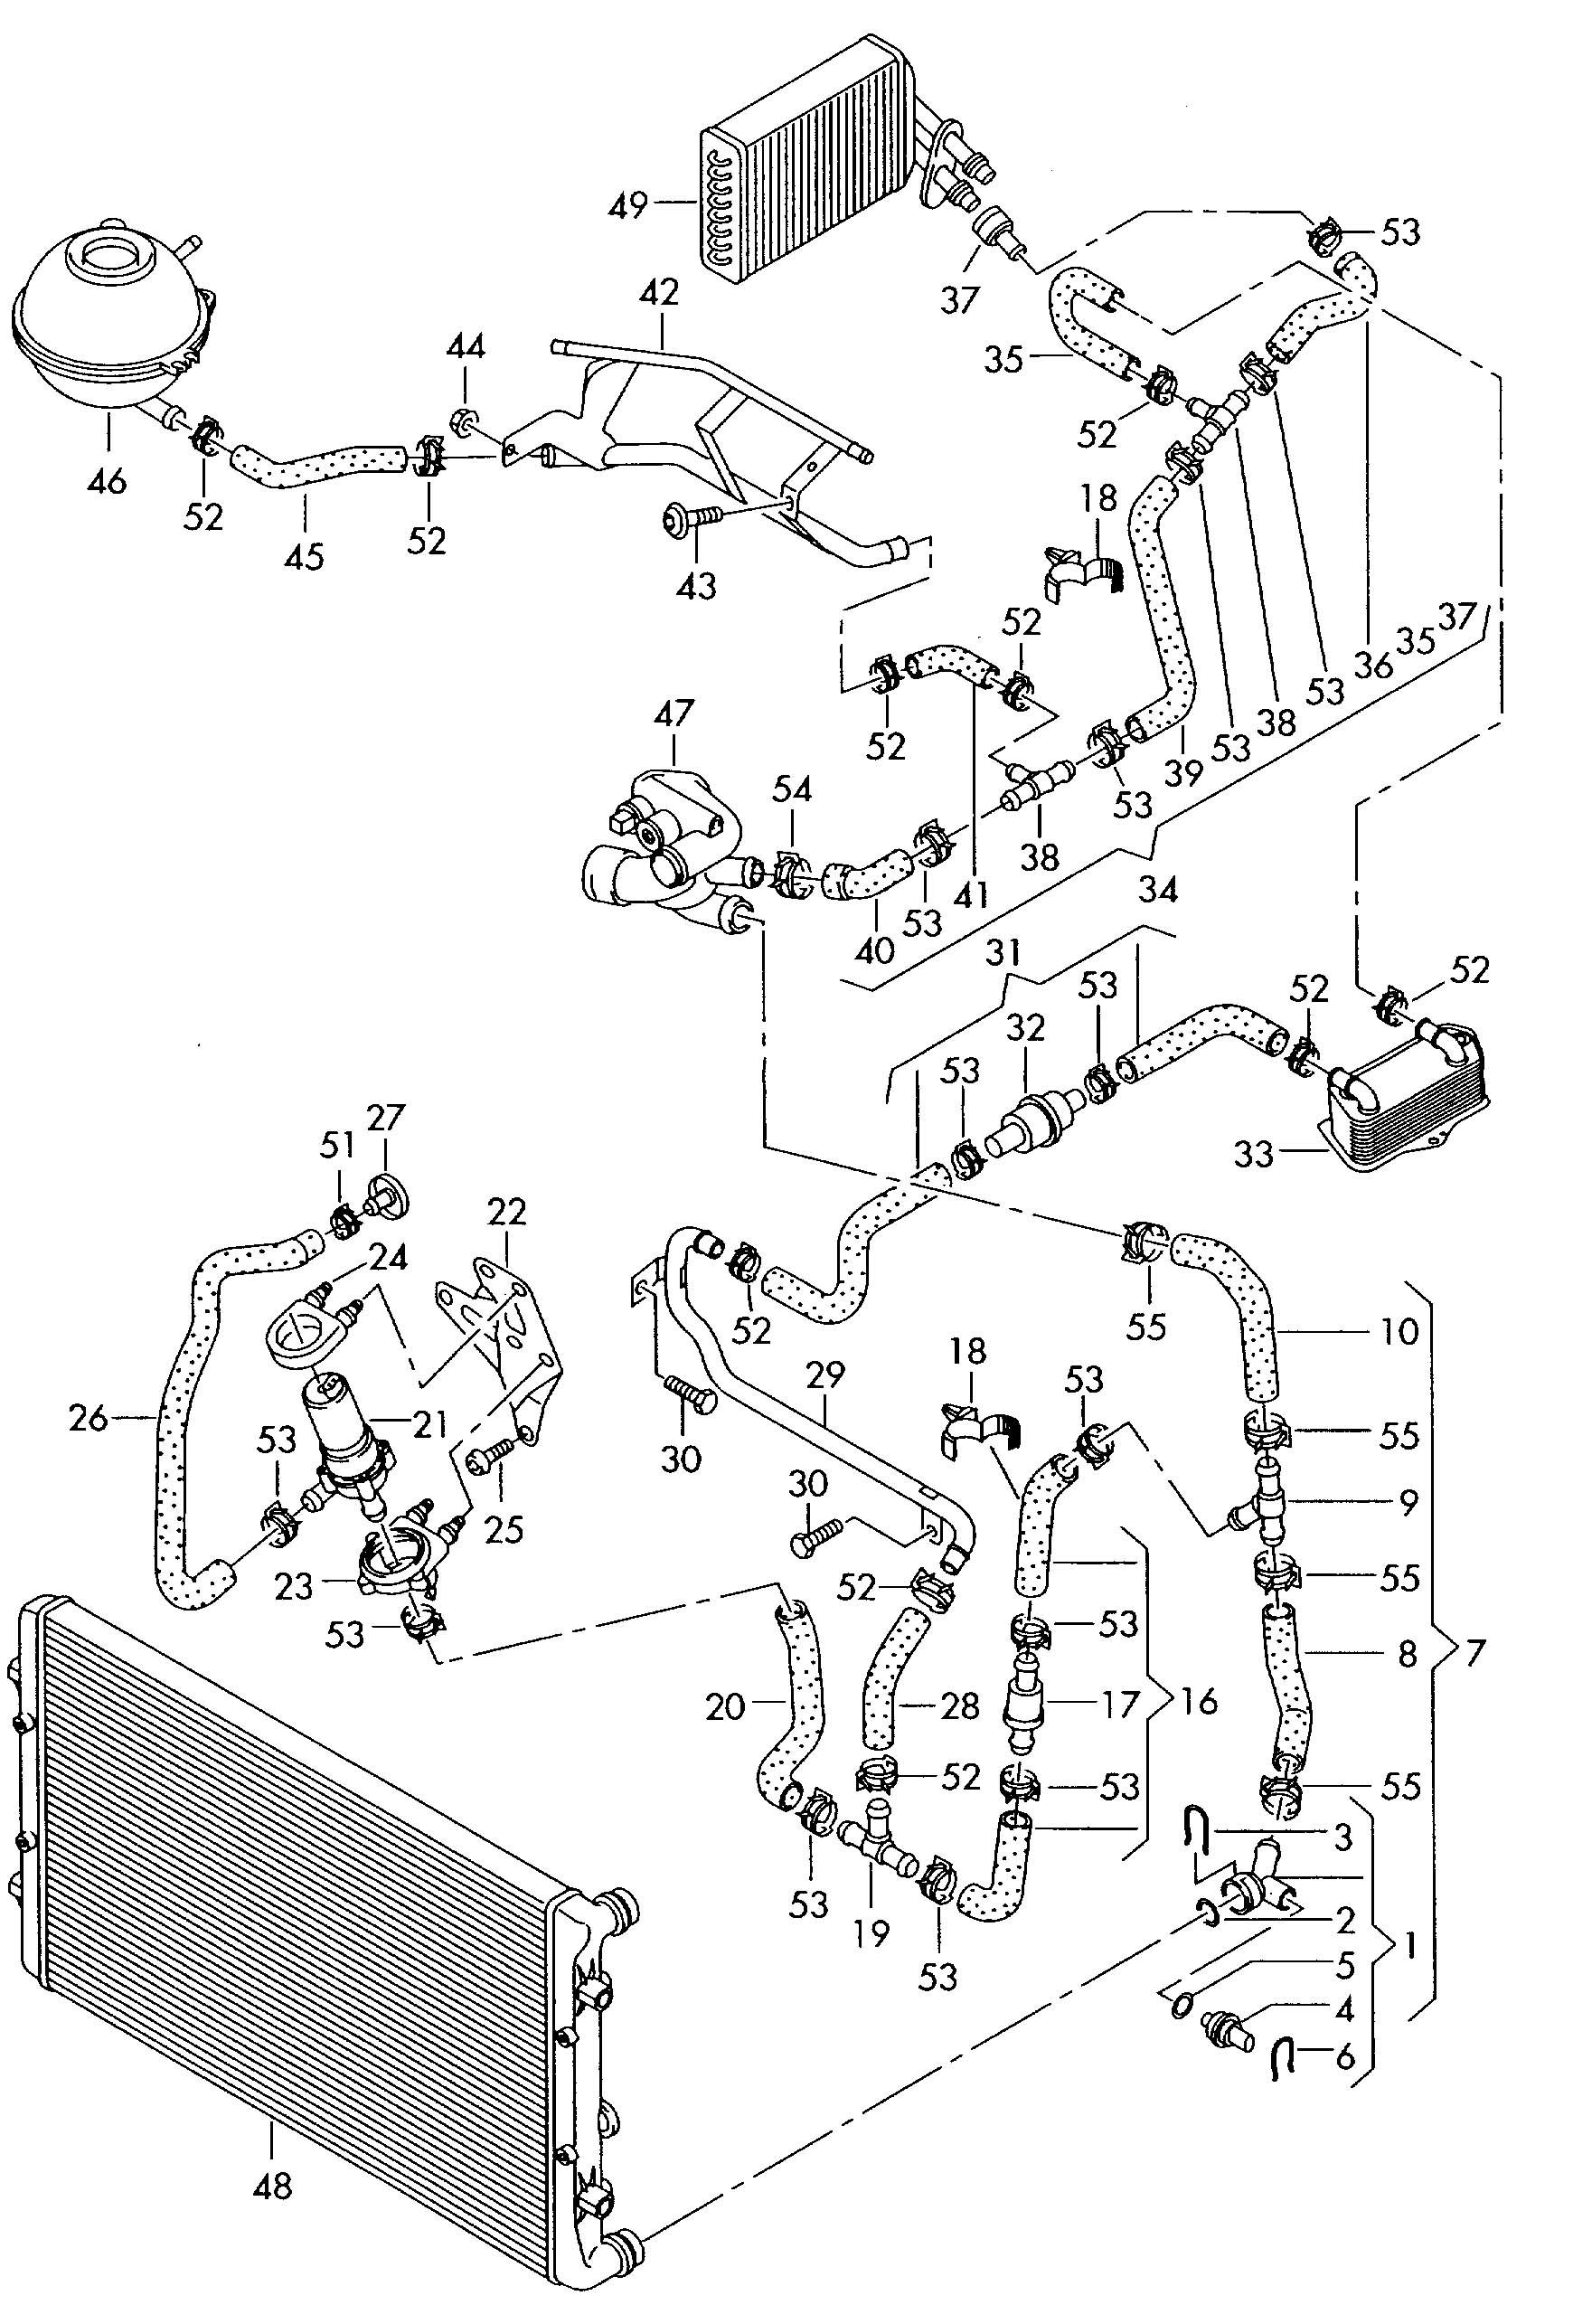 2003 audi rs6 radiator component assembly and parts diagram car